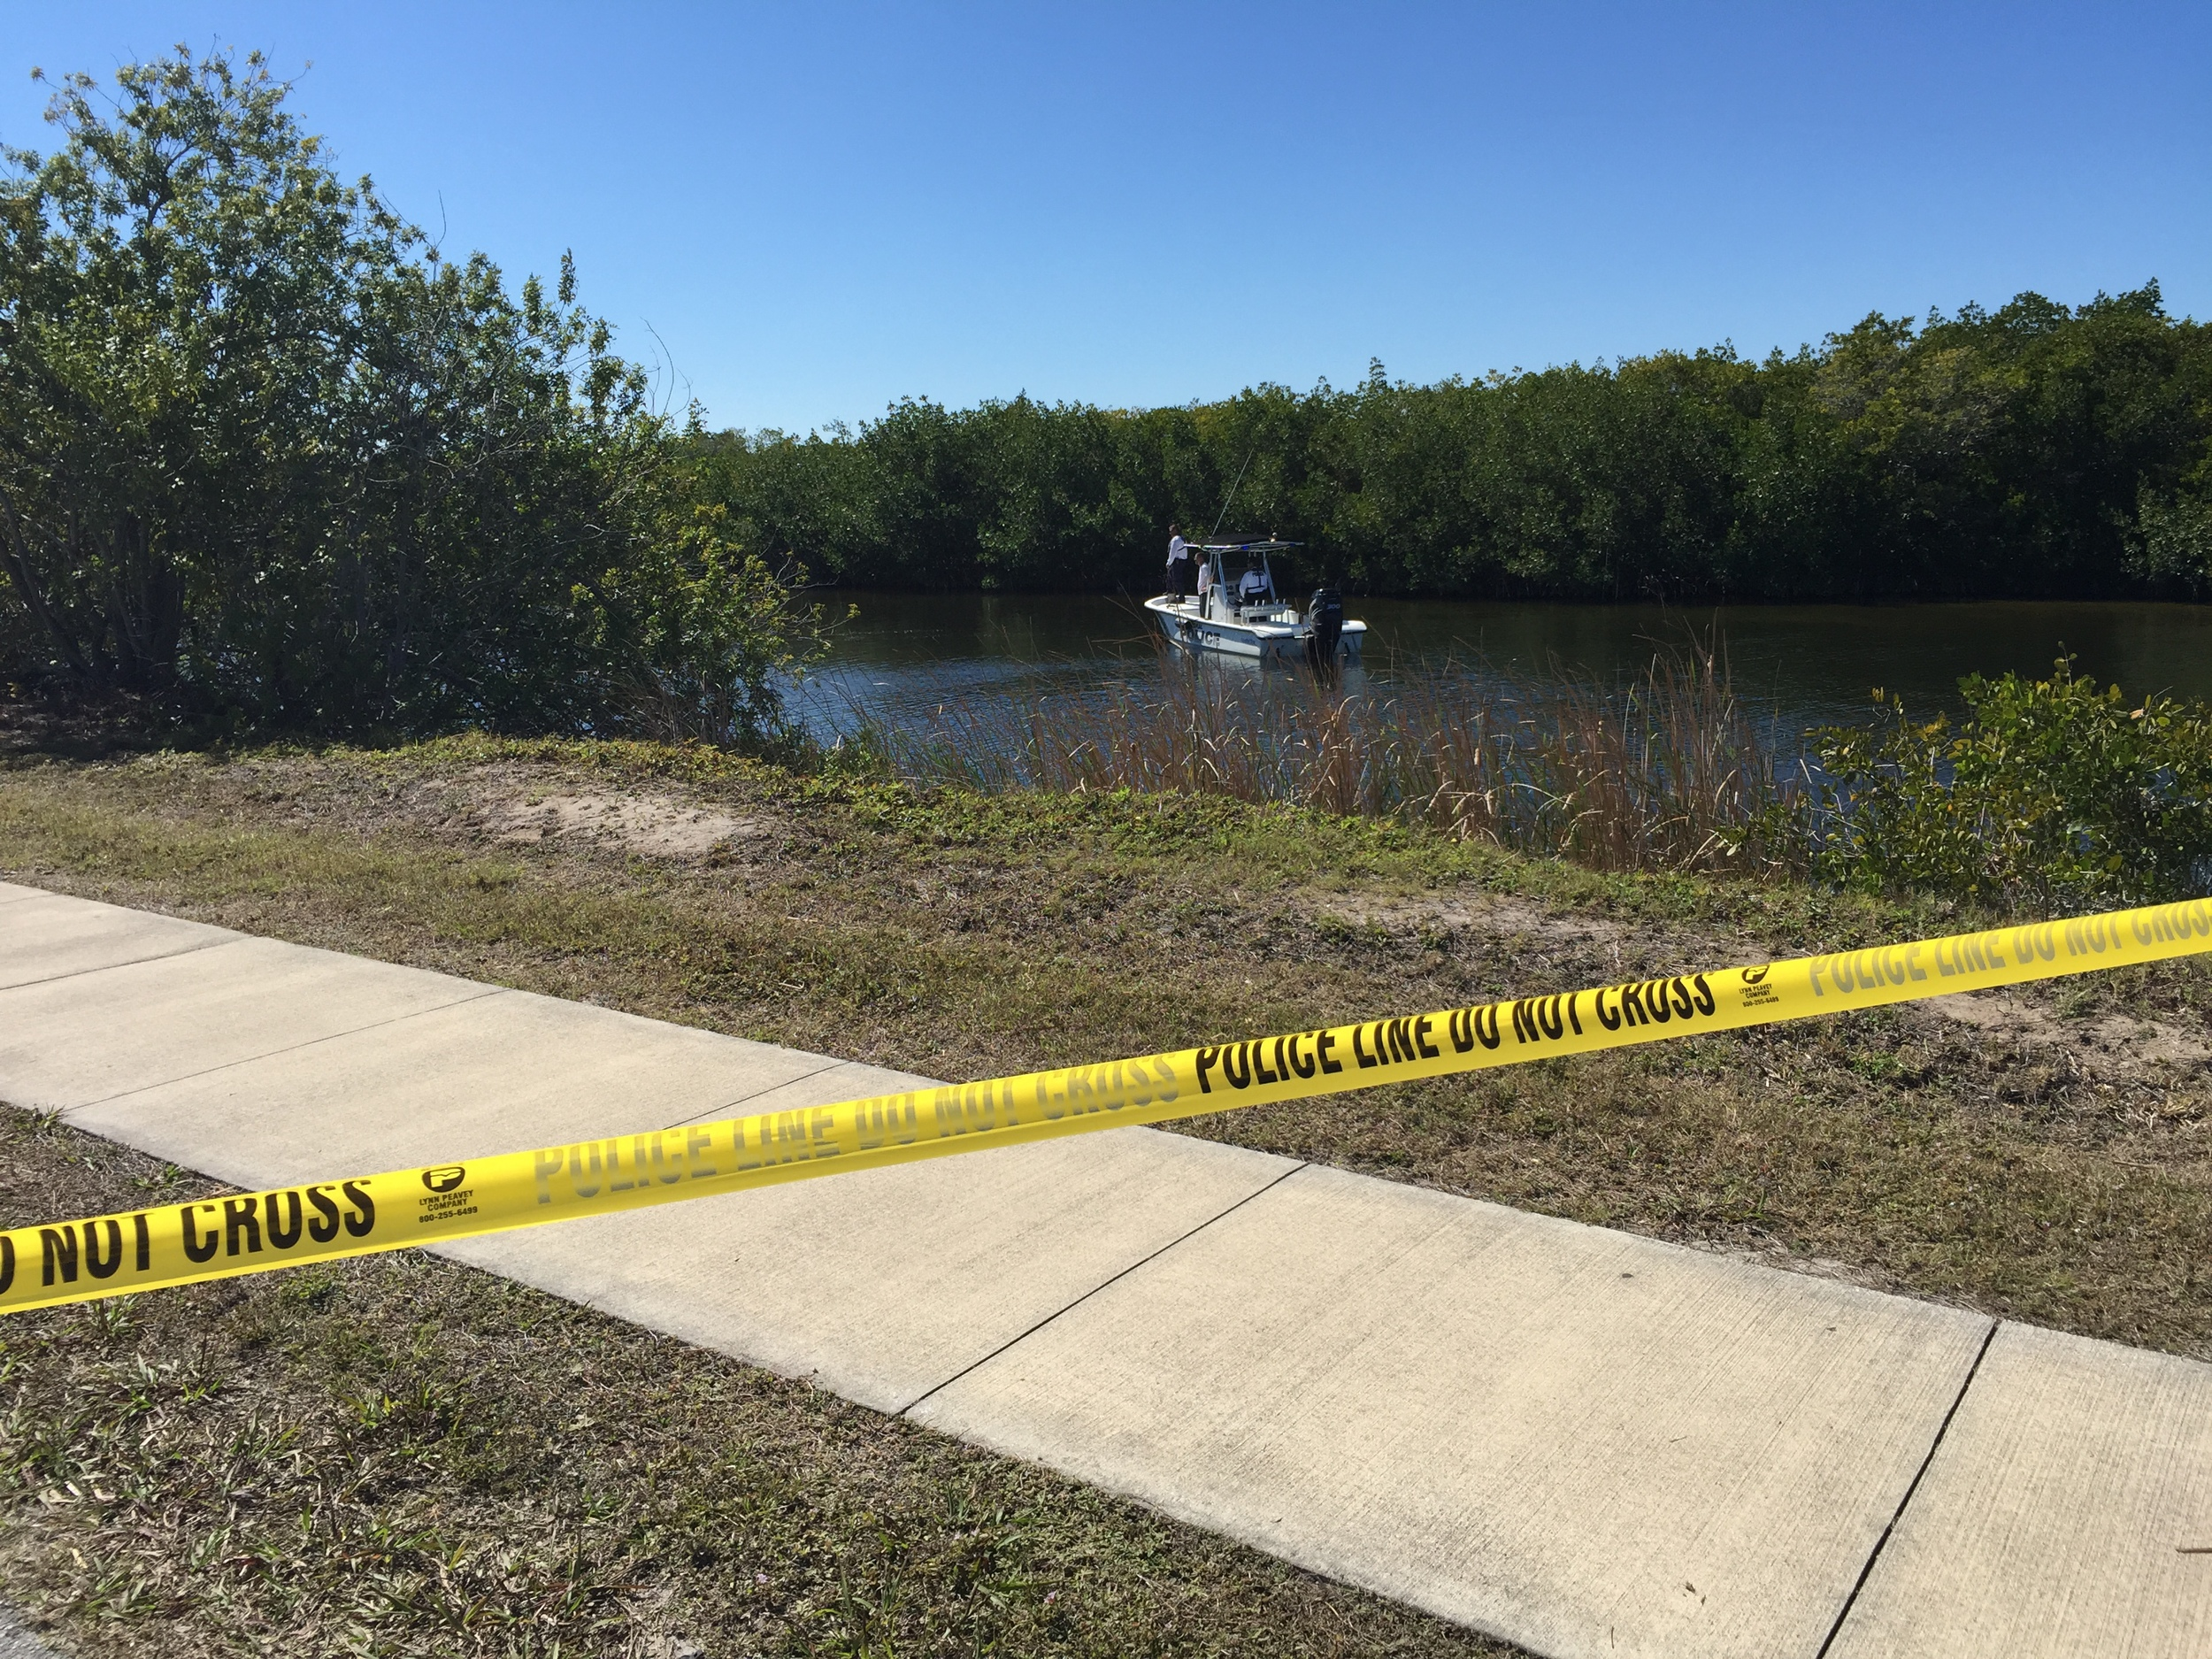 PHOTO: Cape Coral Police Department responded to a single vehicle fatality crash involving an SUV that went into a canal at the intersection of Beach Parkway W. and Surfside Boulevard. Here, the Cape Coral Police Department Marine Unit assists with the recovery of the vehicle from the water.(Photo Courtesy of Cape Coral Police Department)